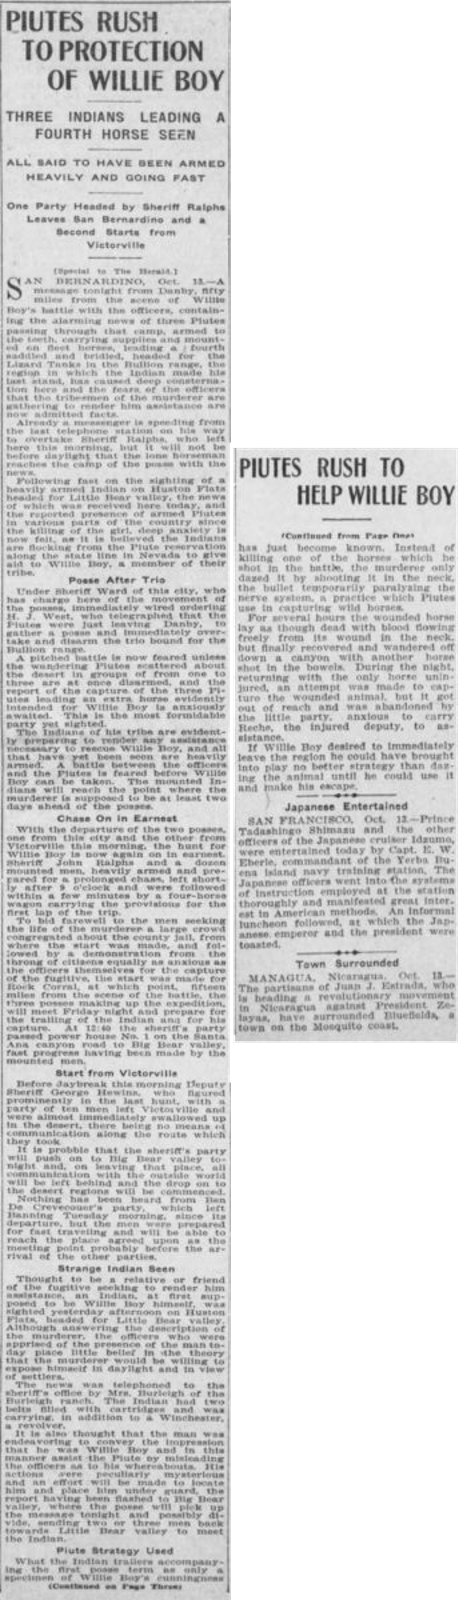 Oct. 14, 1909 - Los Angeles Herald article clipping